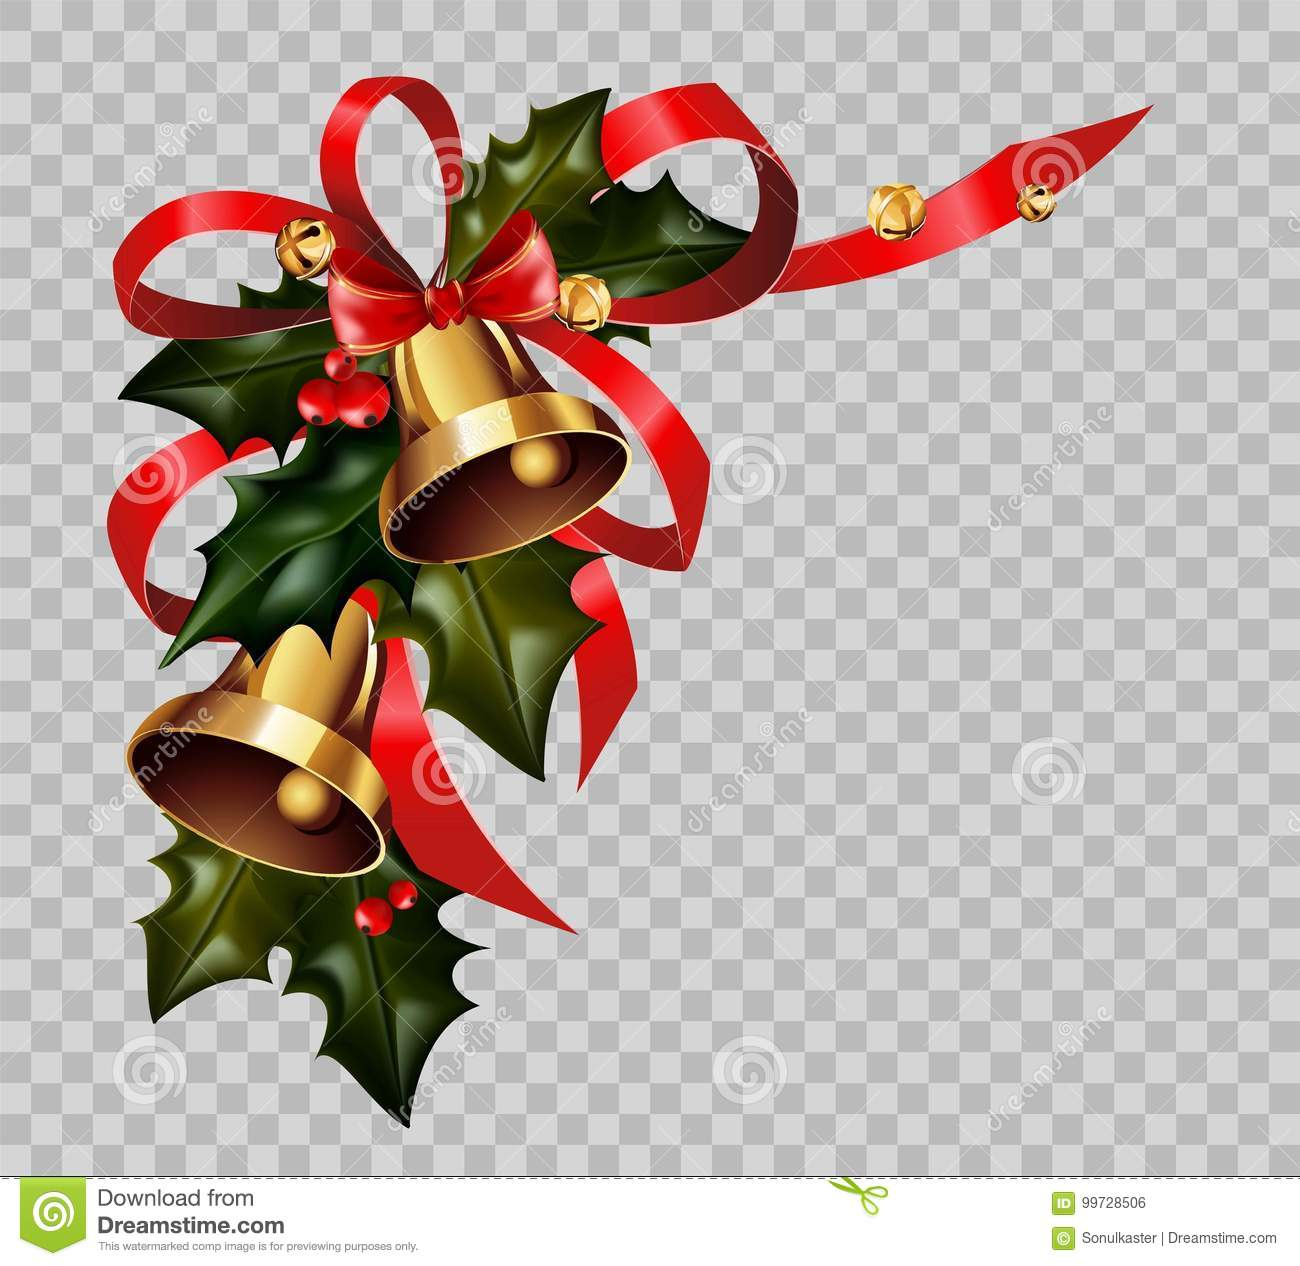 christmas decoration holly wreath bow gold bells element vector transparent background - Christmas Transparent